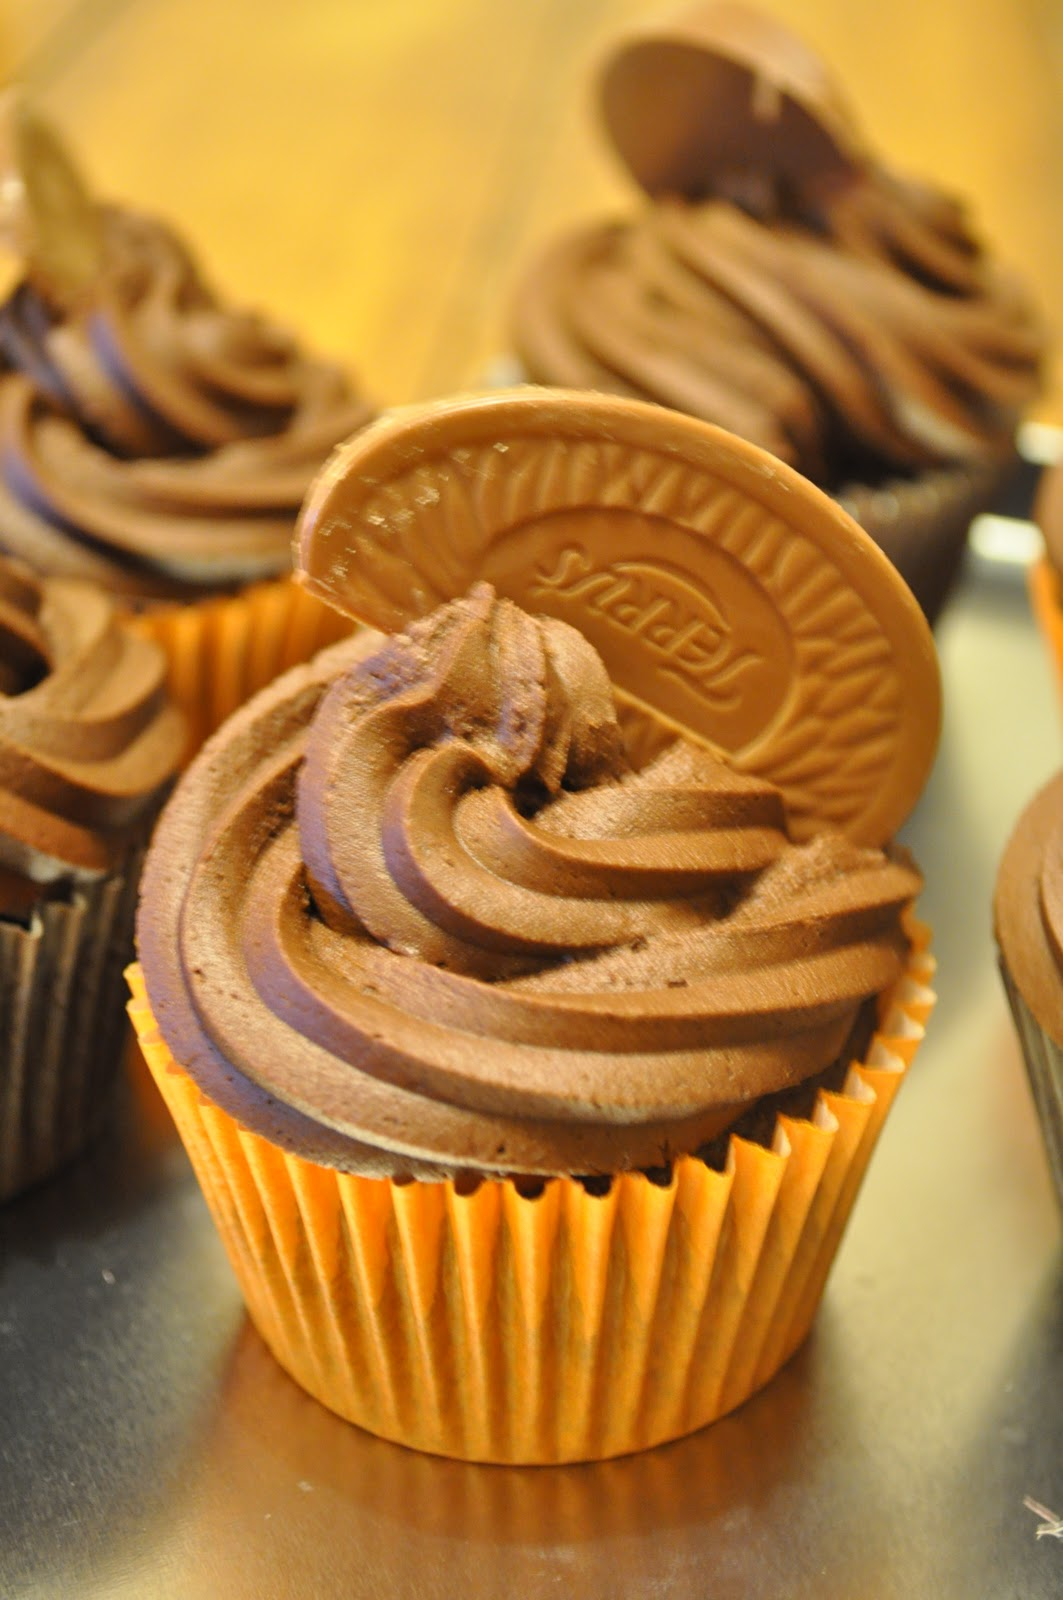 Cookies and Cakes and all things baked!: Chocolate Orange Cupcakes